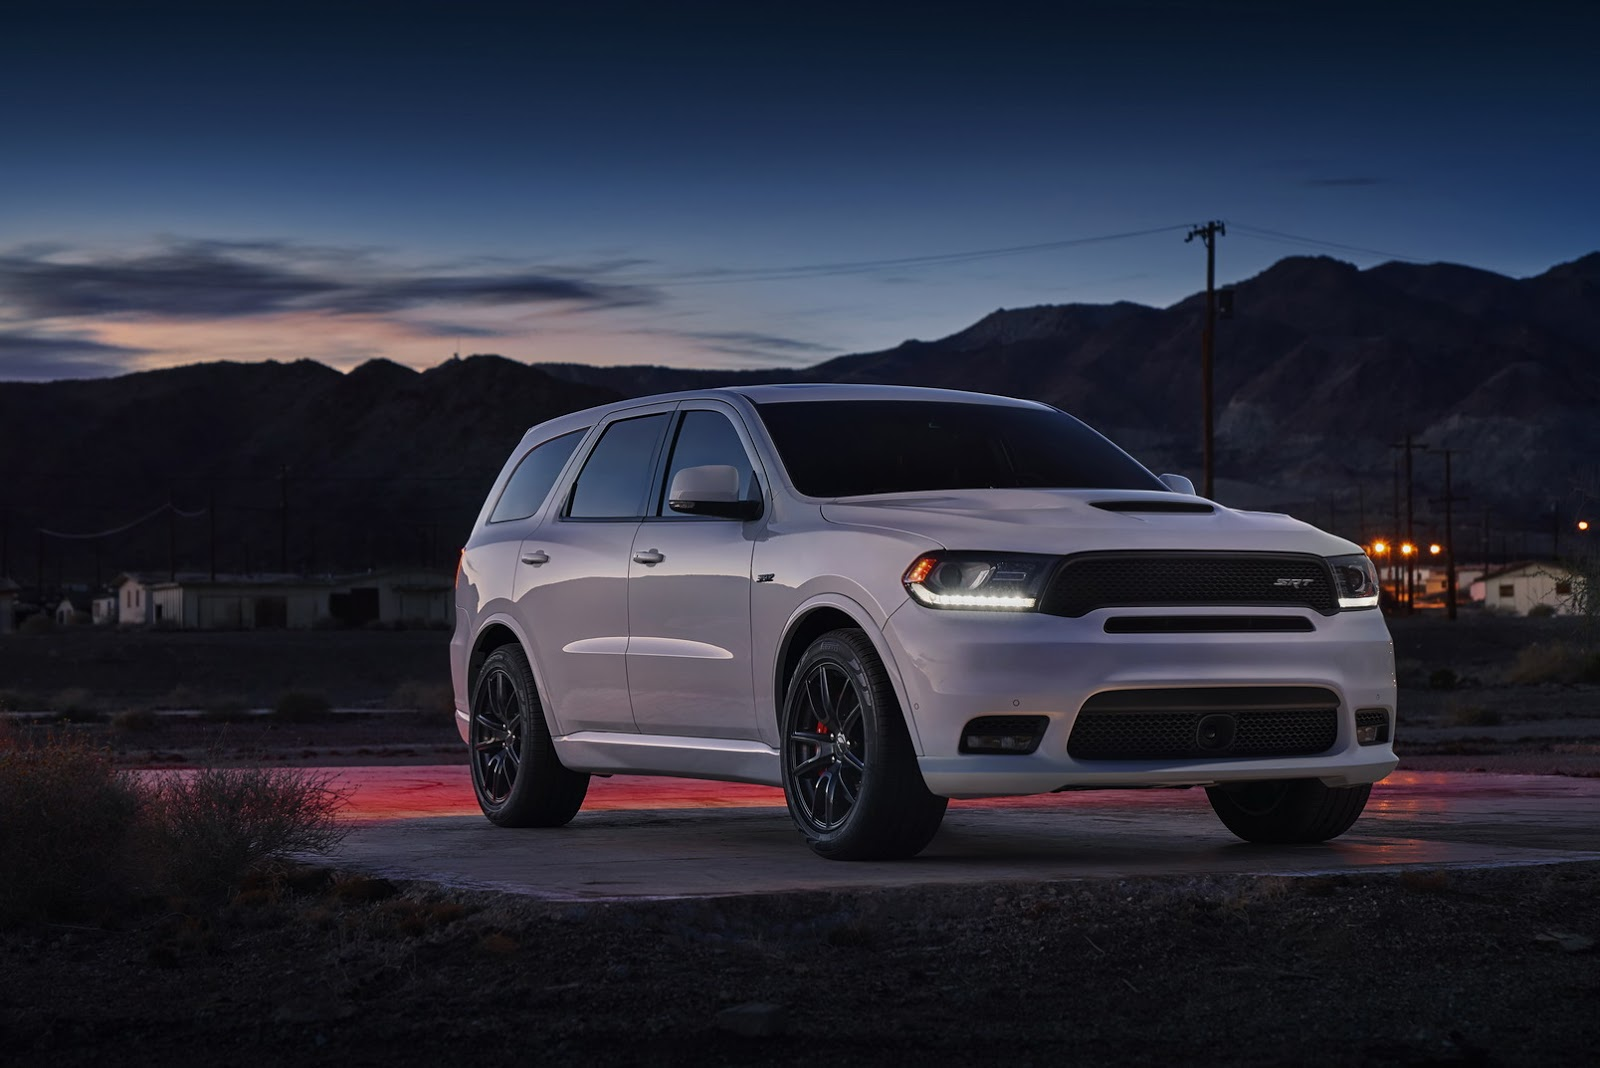 Year Old Steals Moms Dodge Durango Because She Took Away His Playstation on 2018 Dodge Durango